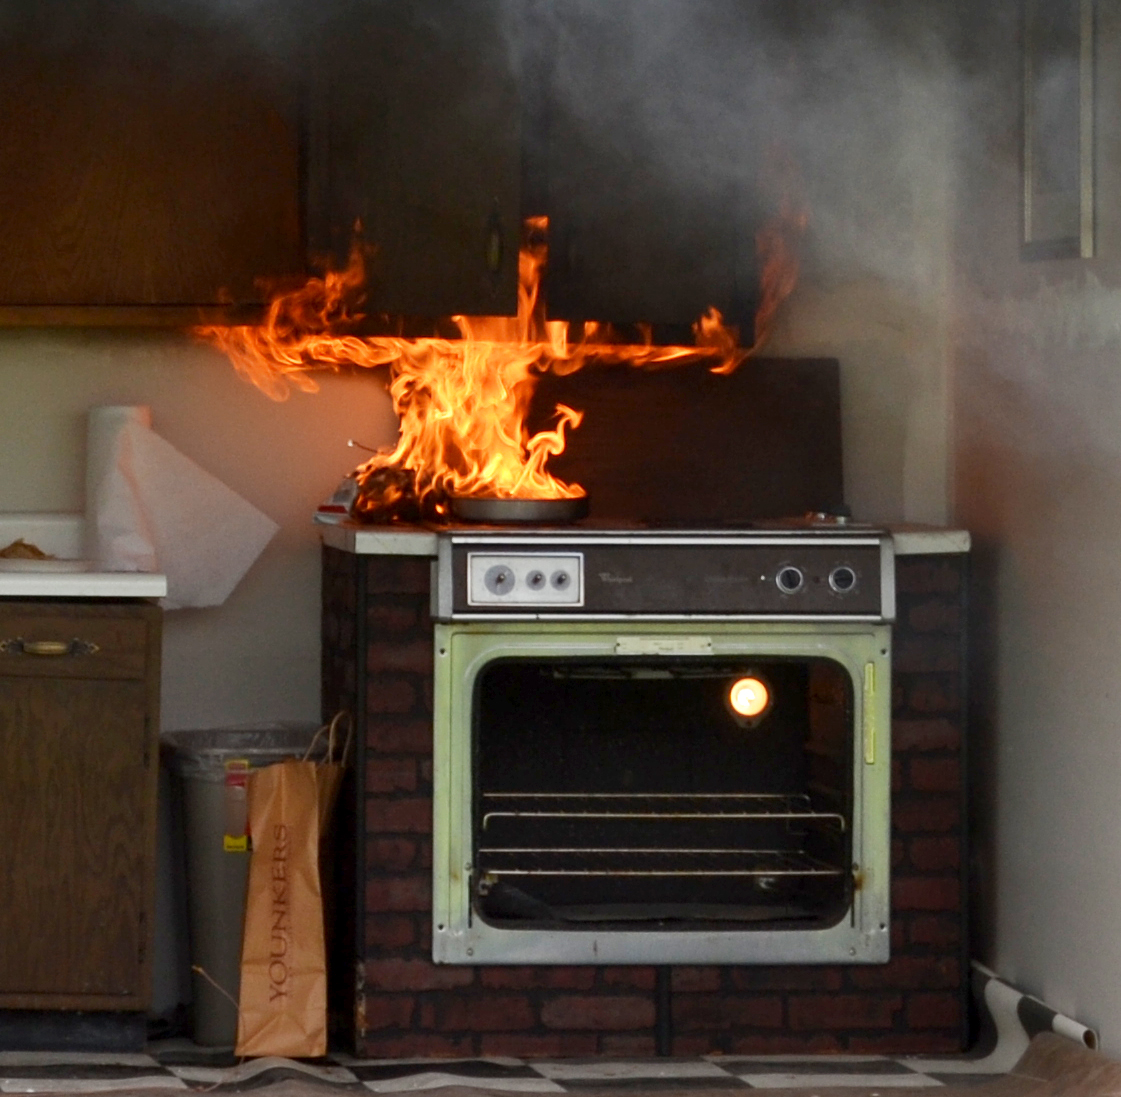 Awareness Prevents Kitchen Fires, According to Grinnell ...